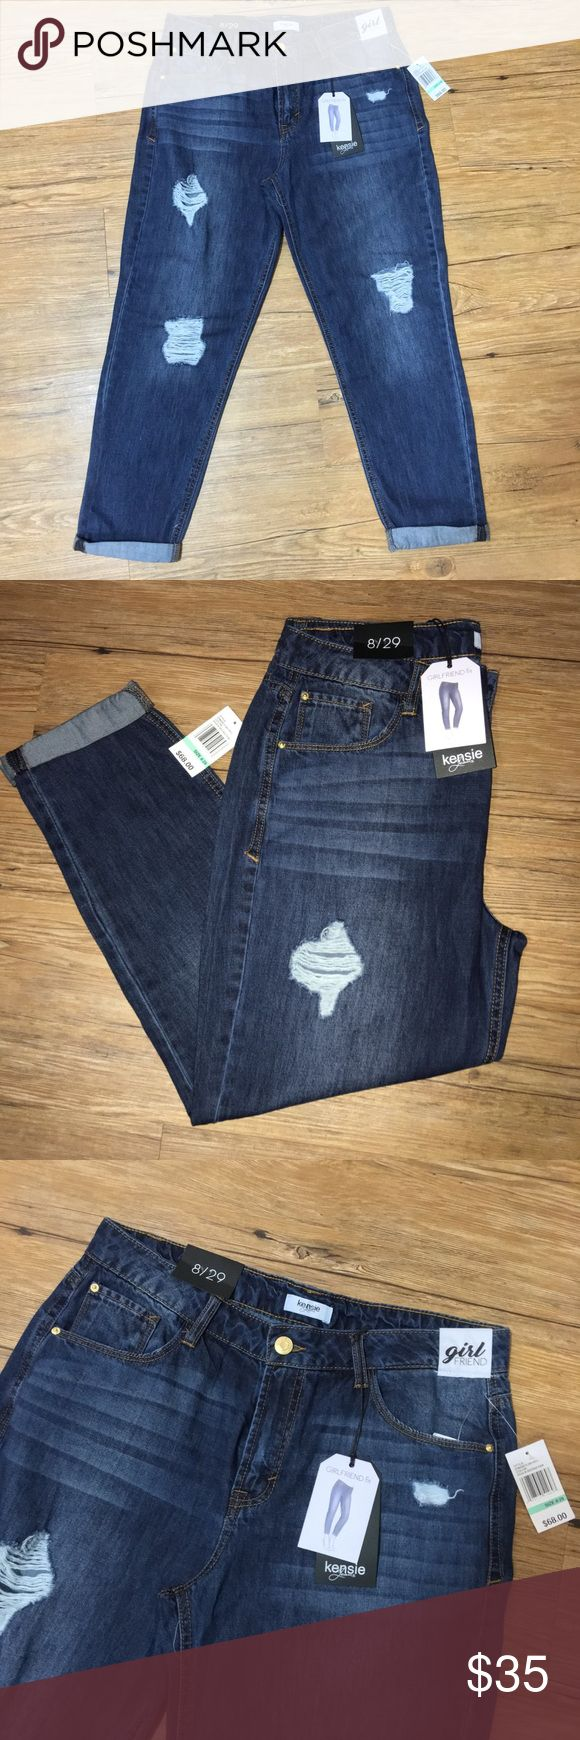 Kensie Jeans Girlfriend Fit New with tags measurements coming soon! Kensie Jeans